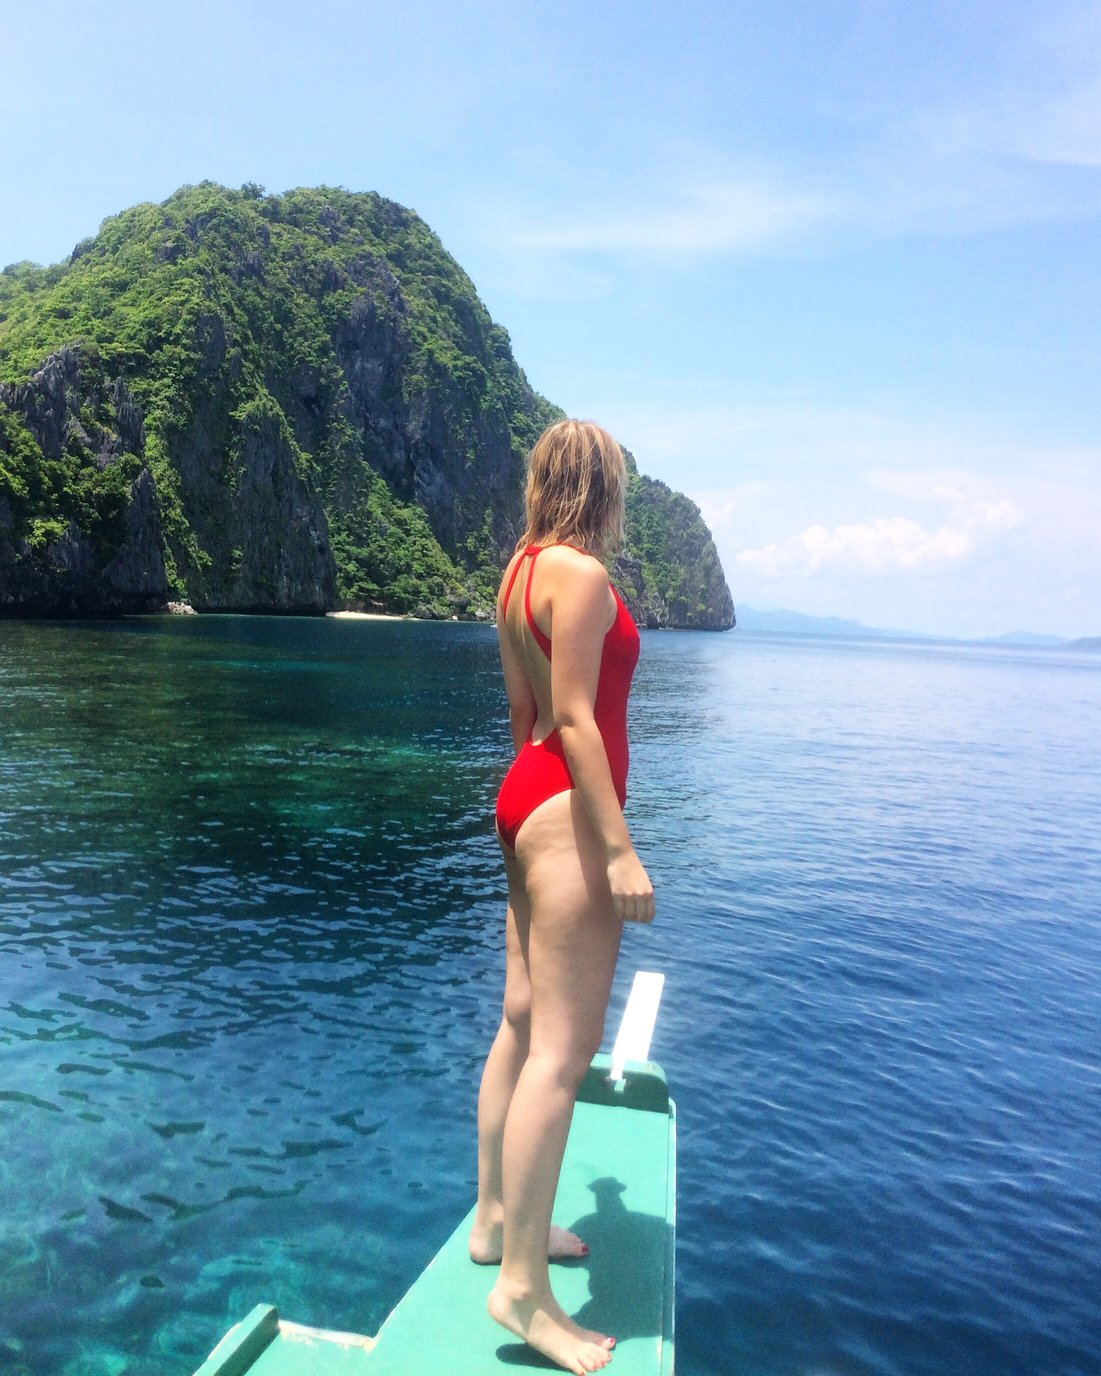 Girl in red swimsuit standing in the front of a boat looking over the ocean